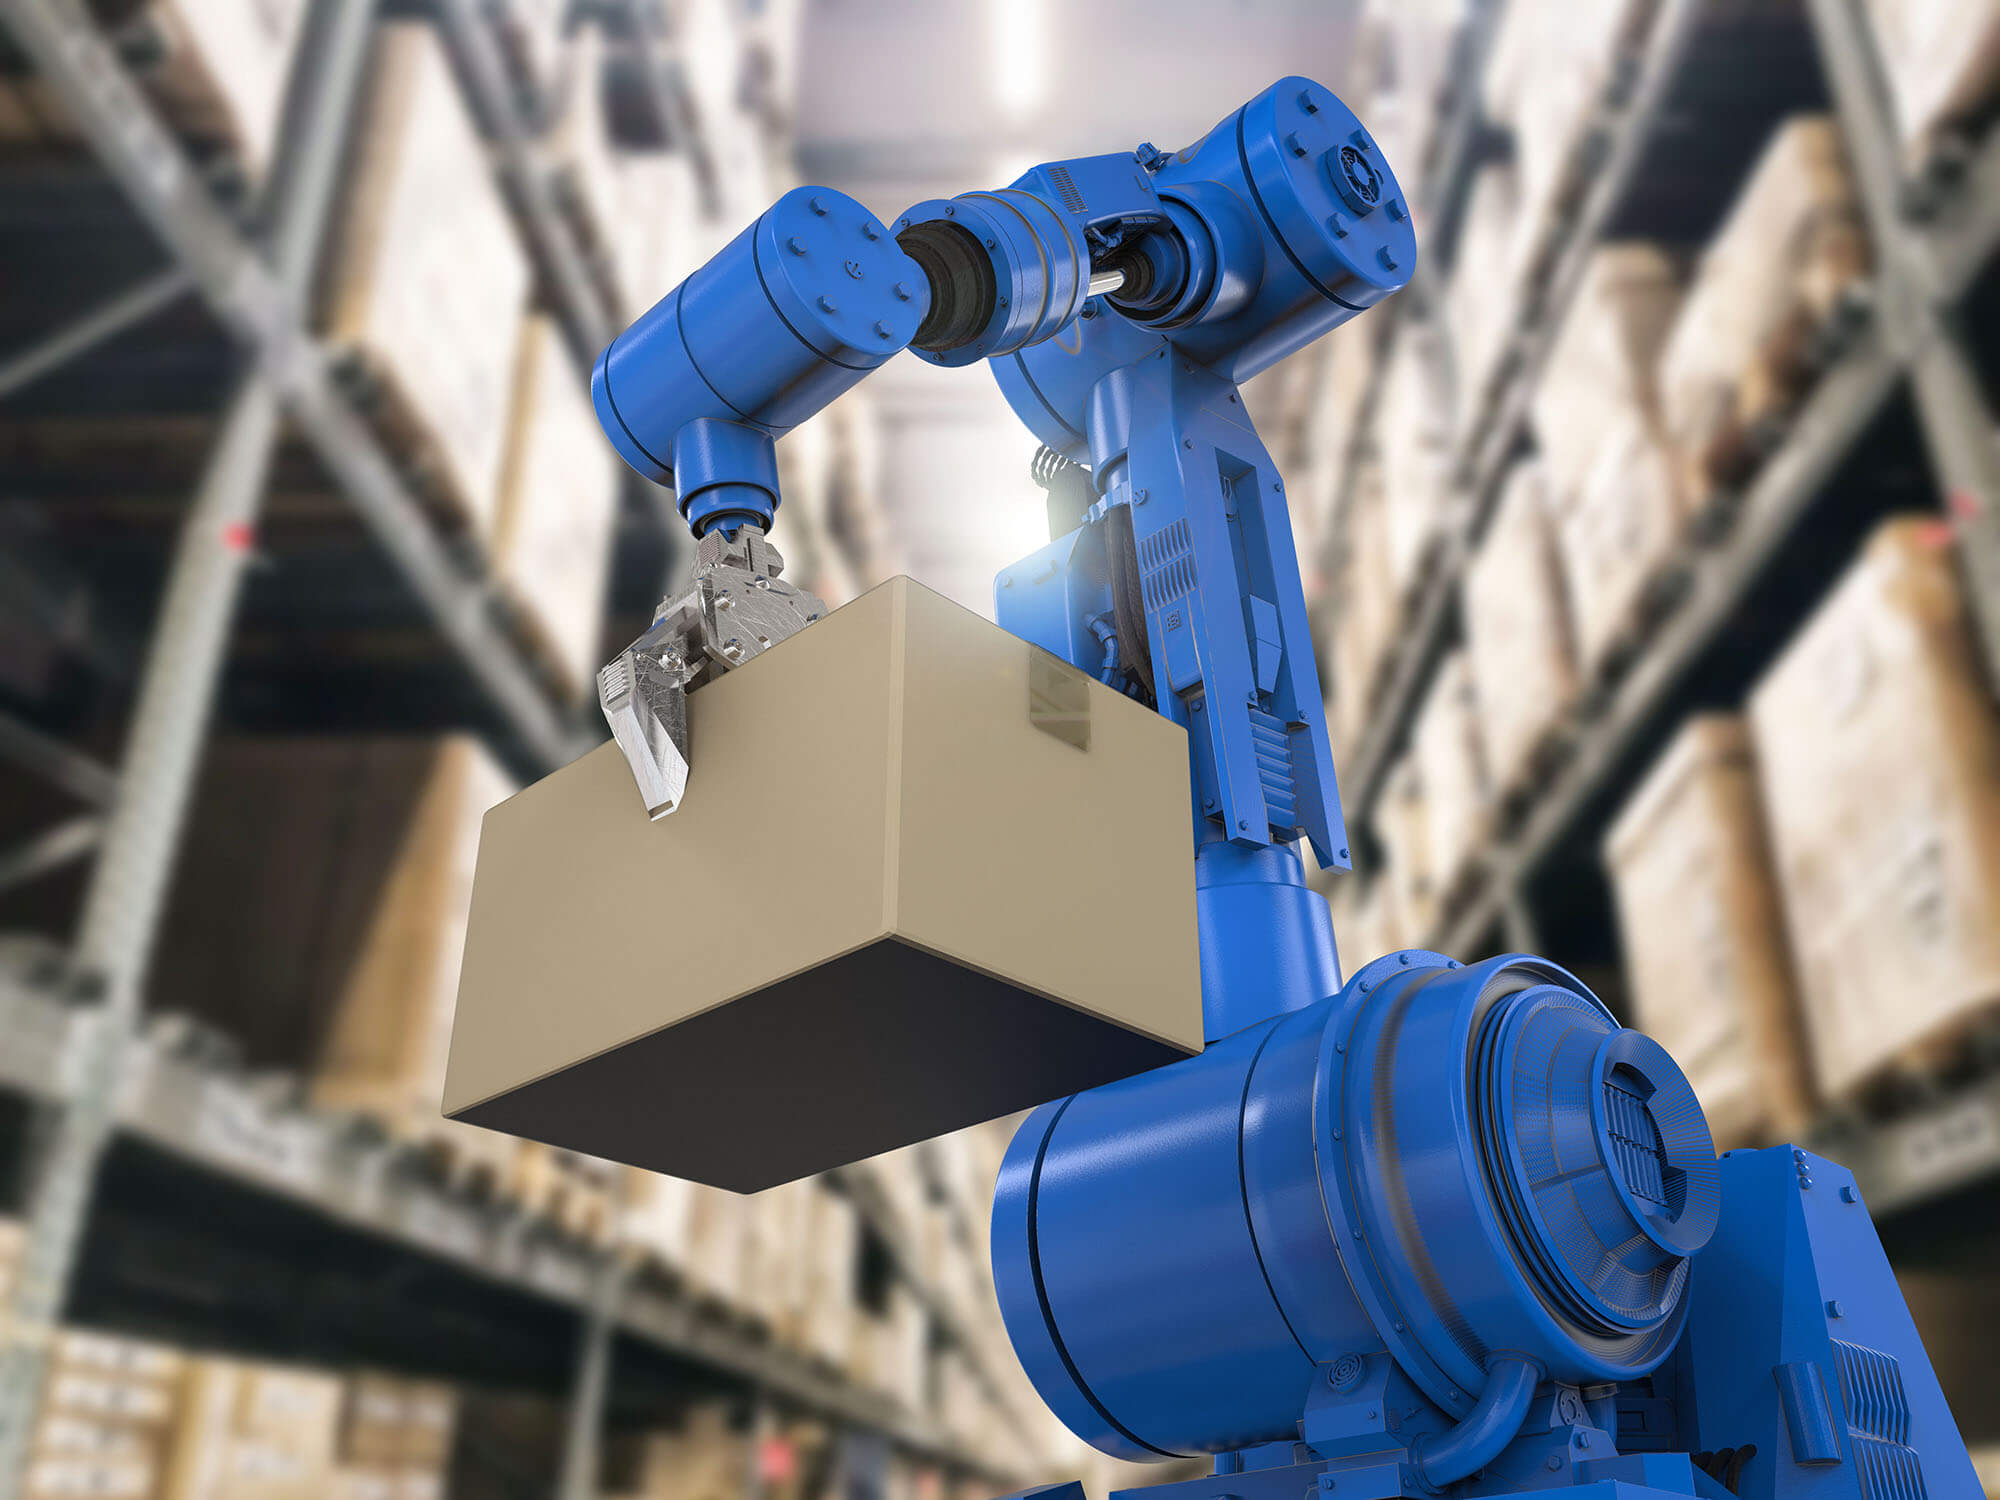 Robotic Arm in Warehouse